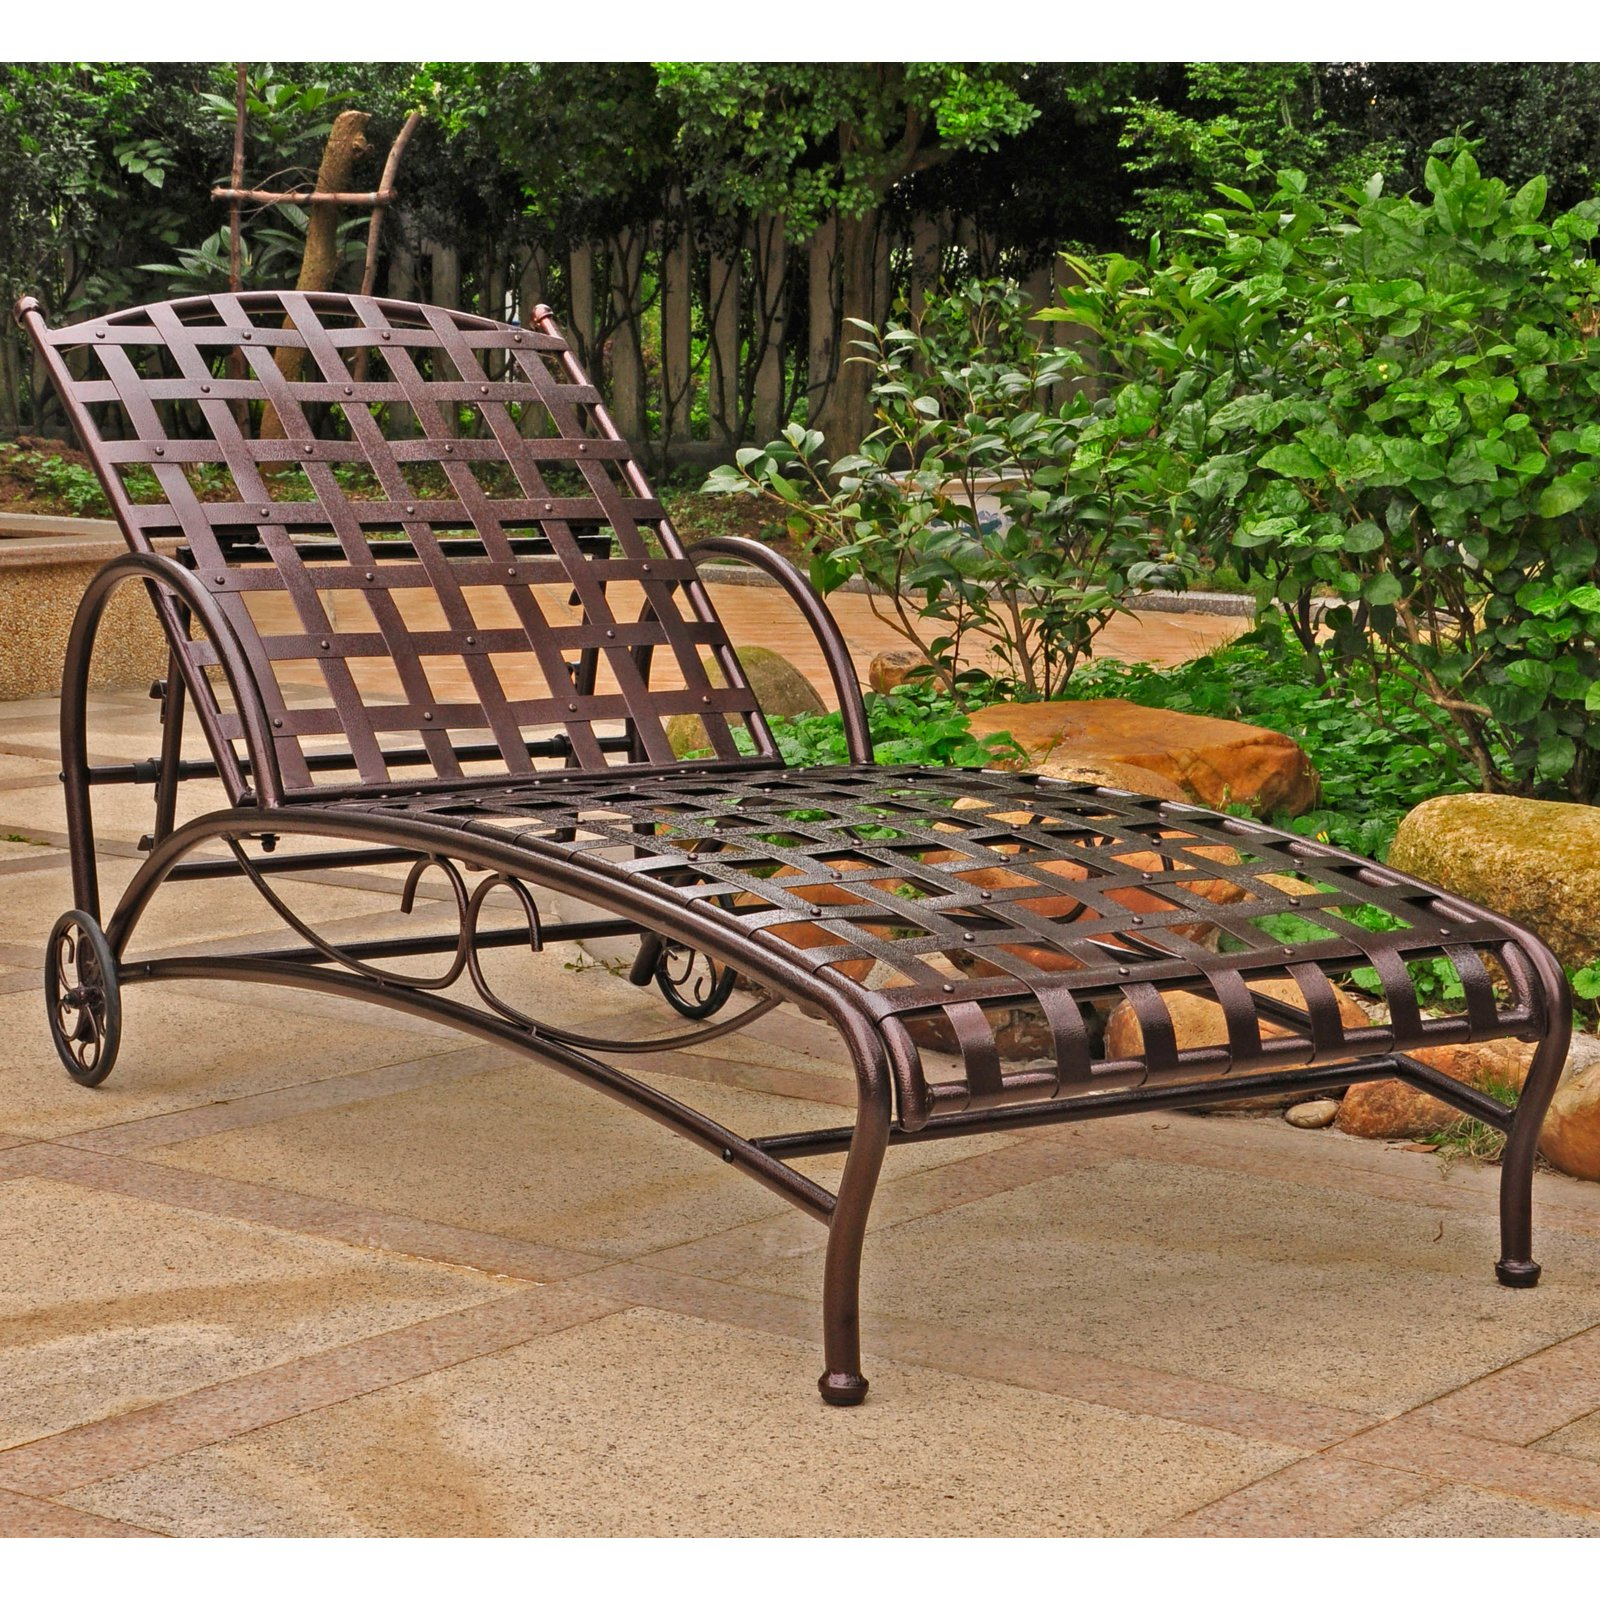 Famous Resin Wicker Aluminum Multi Position Chaise Lounges Pertaining To International Caravan Santa Fe Iron Multi Position Single (View 5 of 25)